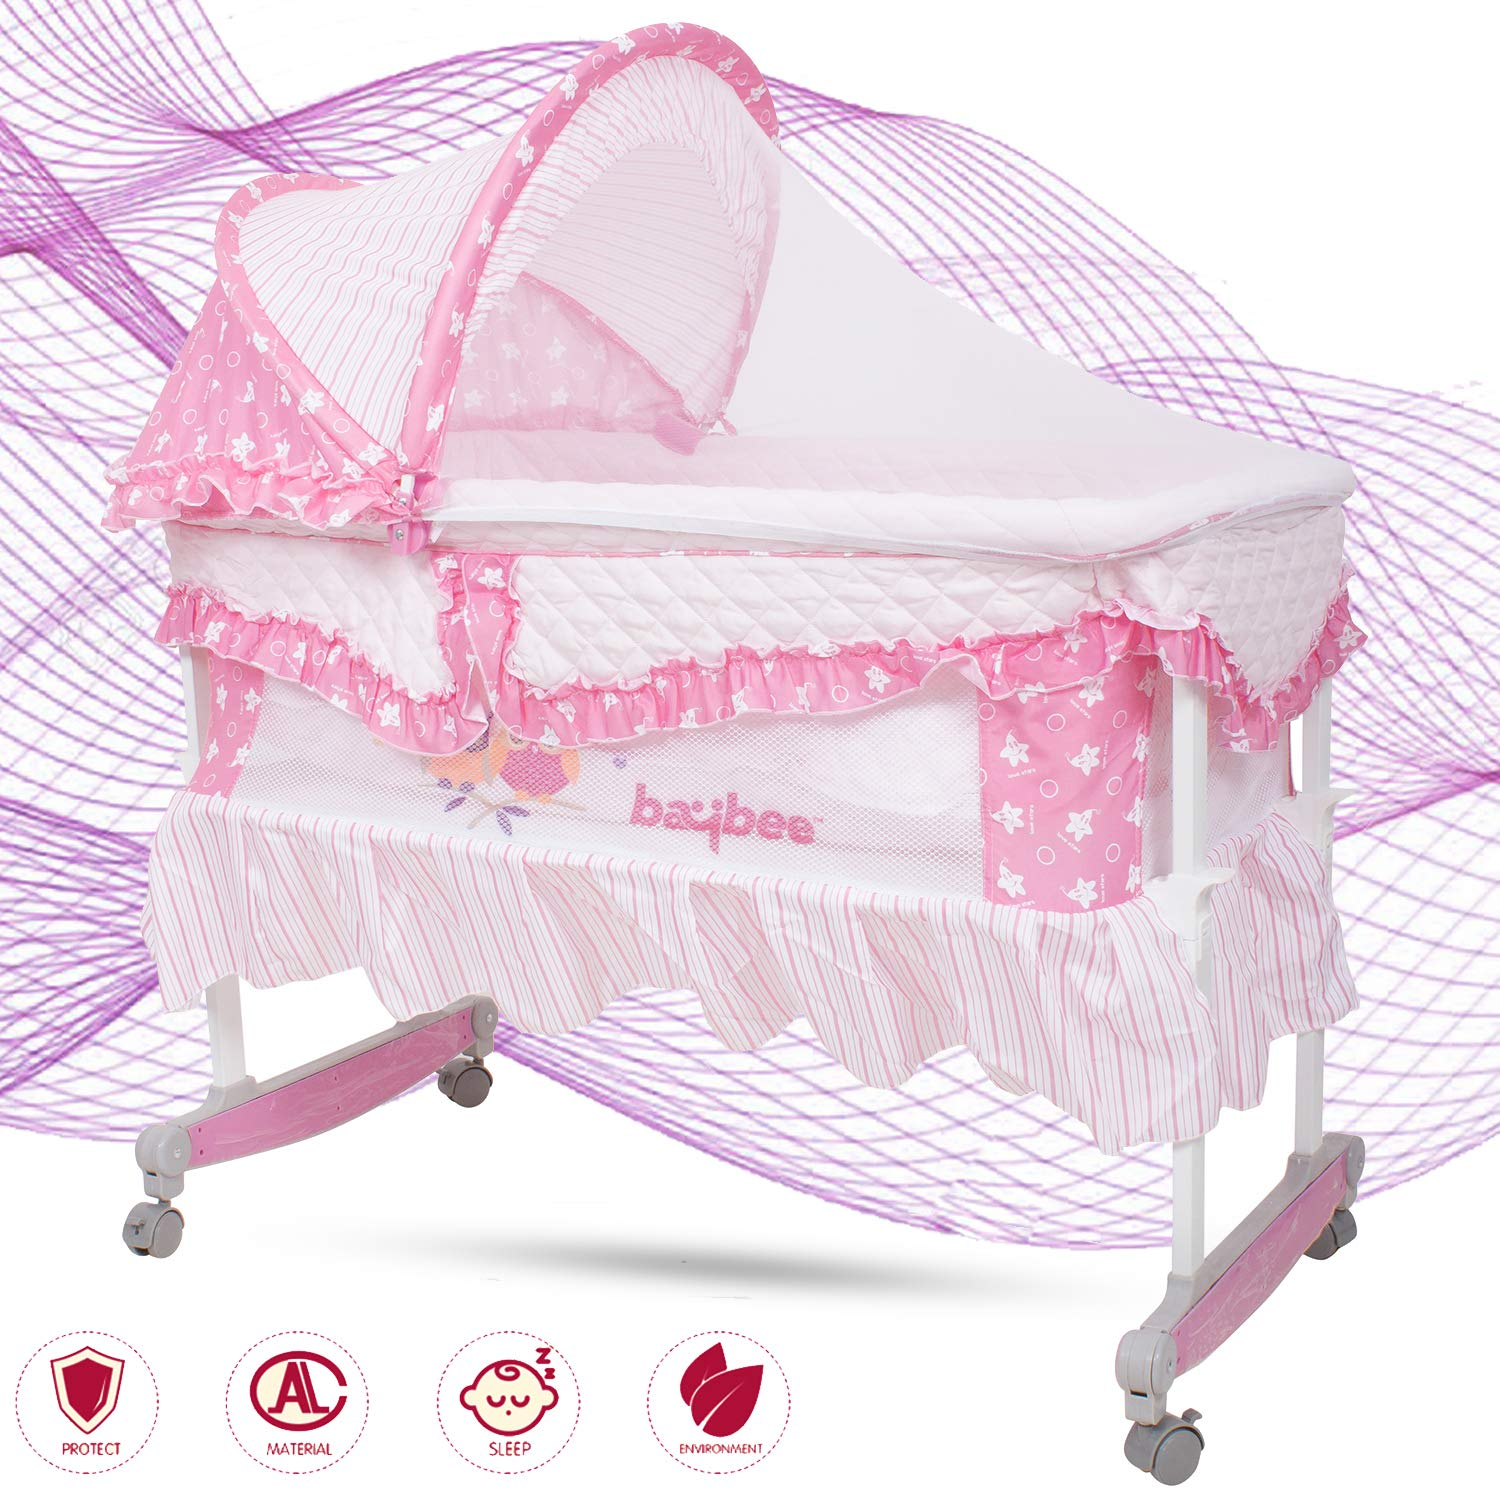 Baybee Day Dreams New Born Baby Cradle Cum Rocker with Mosquito Net- Canopy and Wheels for New Born Infants (Pink)